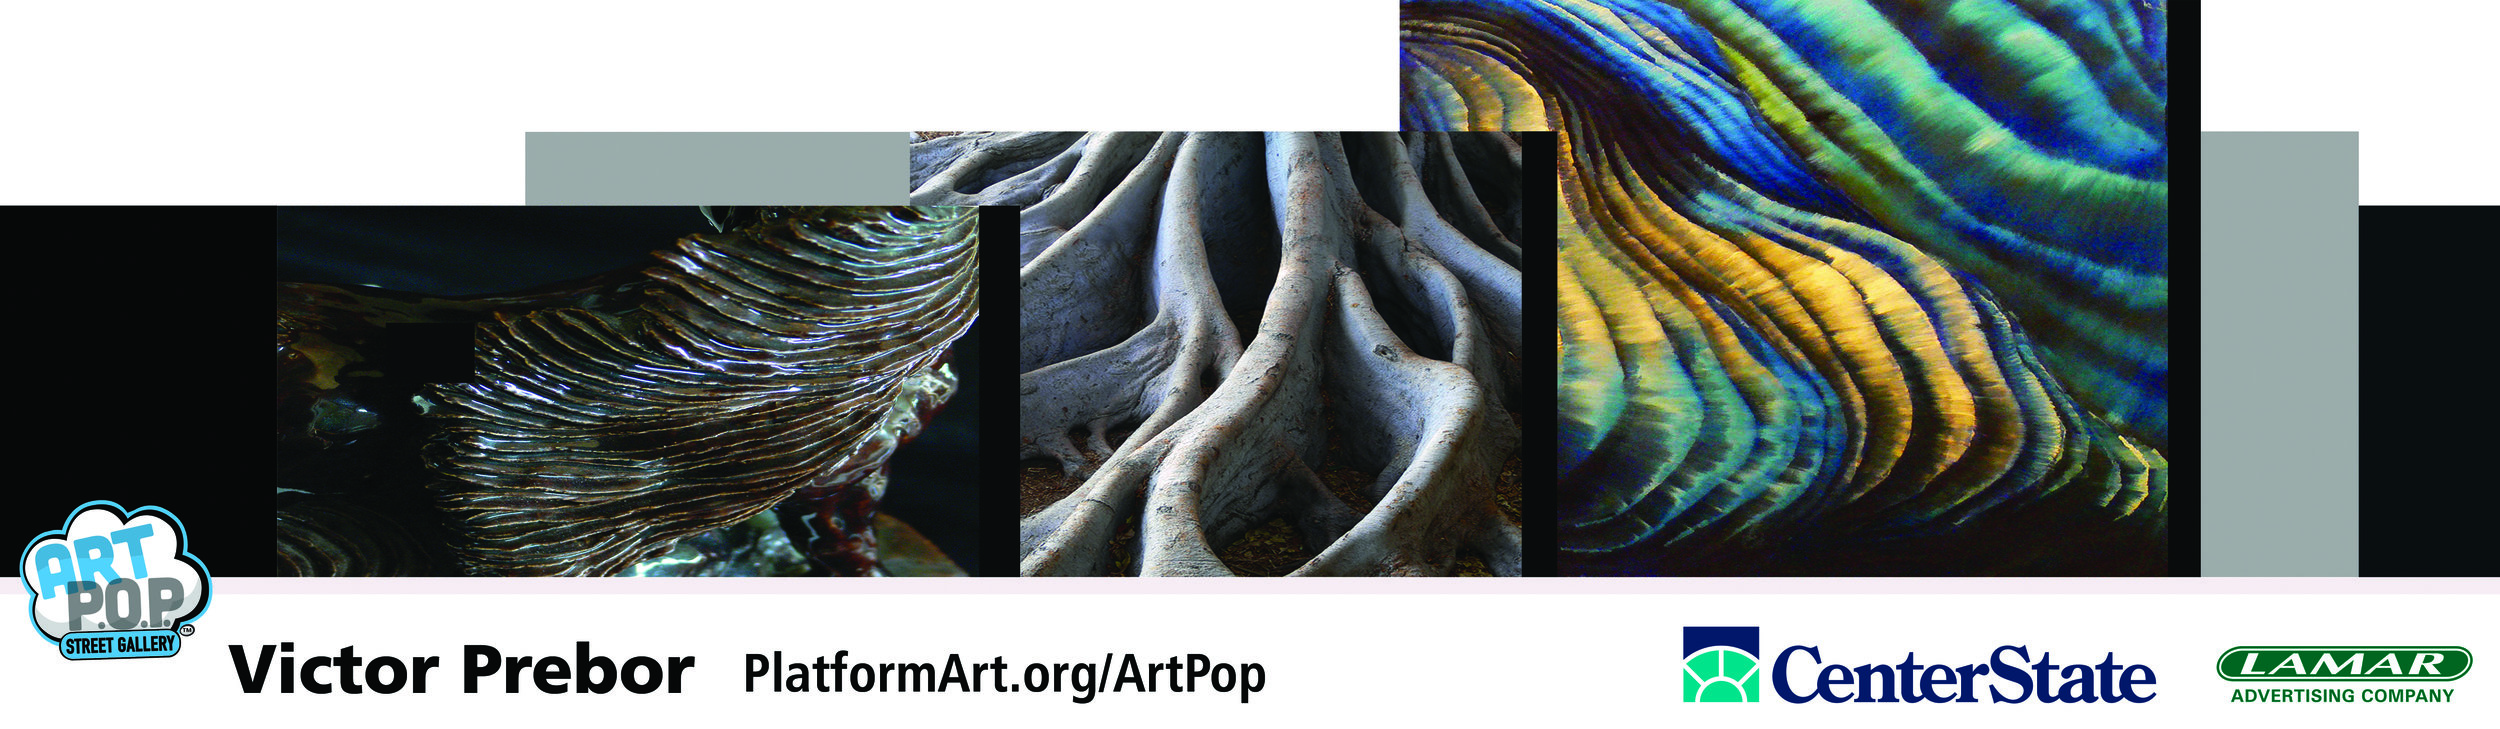 To contact this artist, please email: victor@vprebor.com